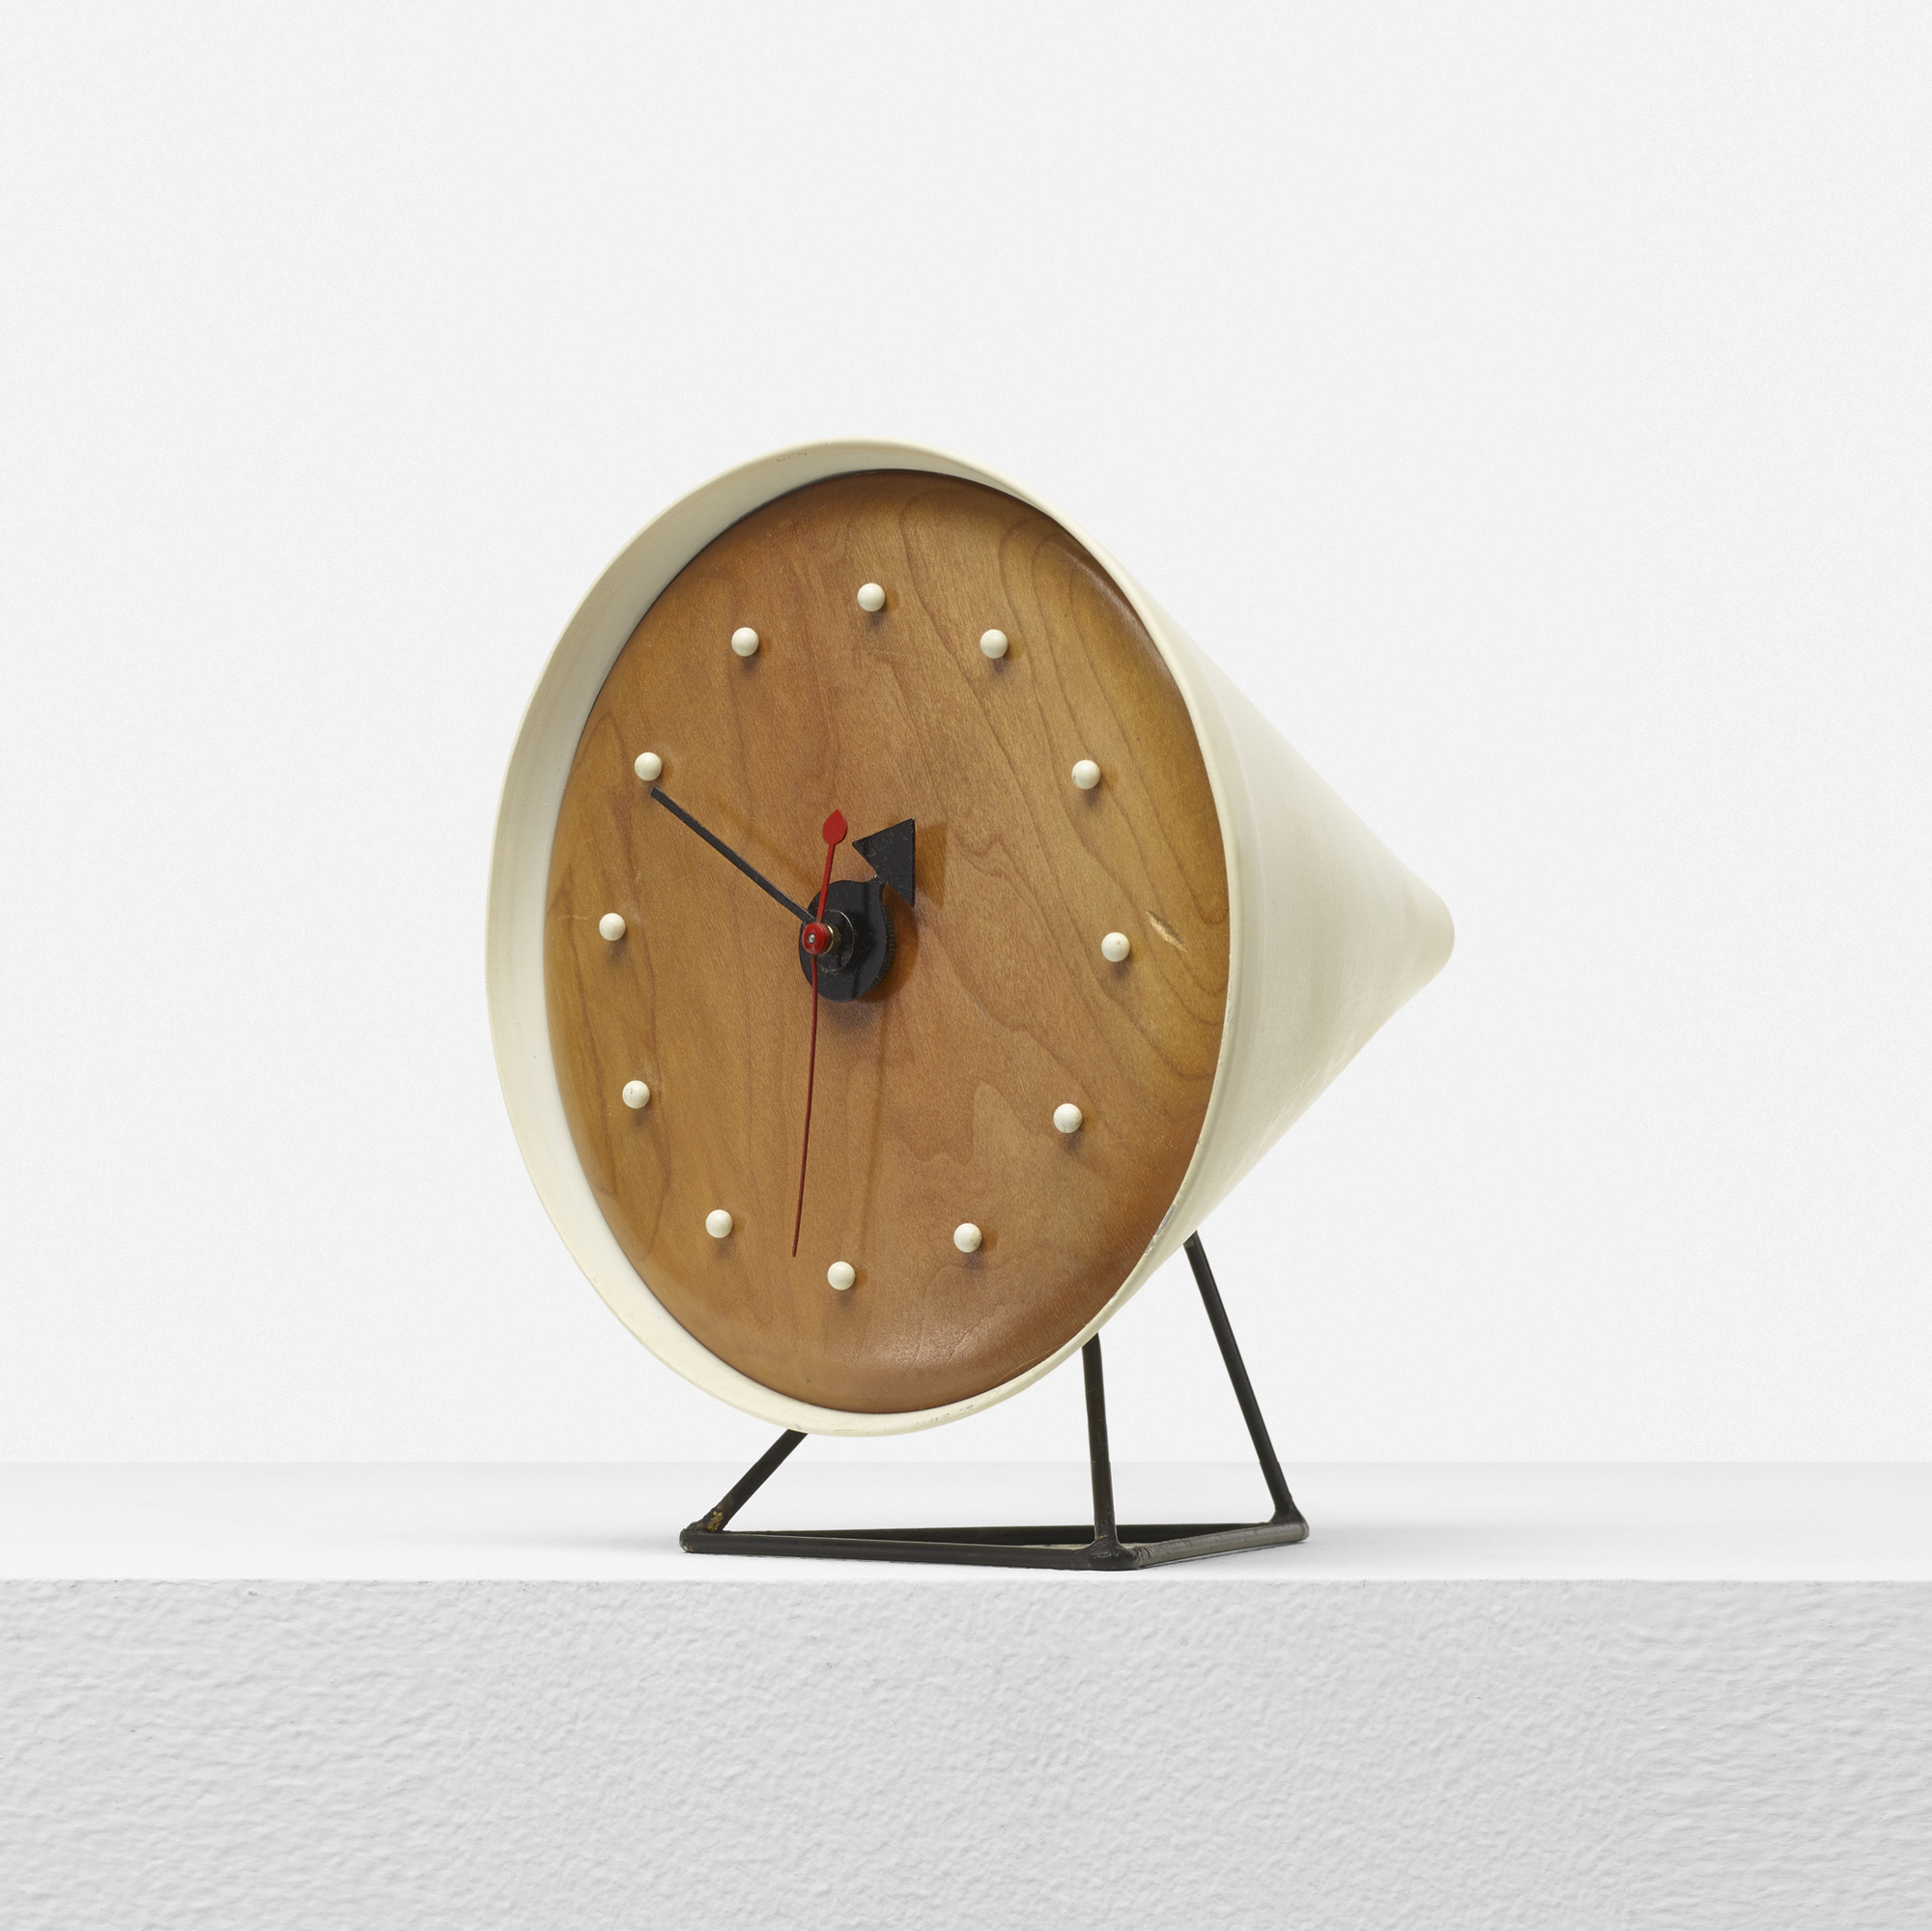 345: George Nelson & Associates / Cone table clock, model 2218A (1 of 3)